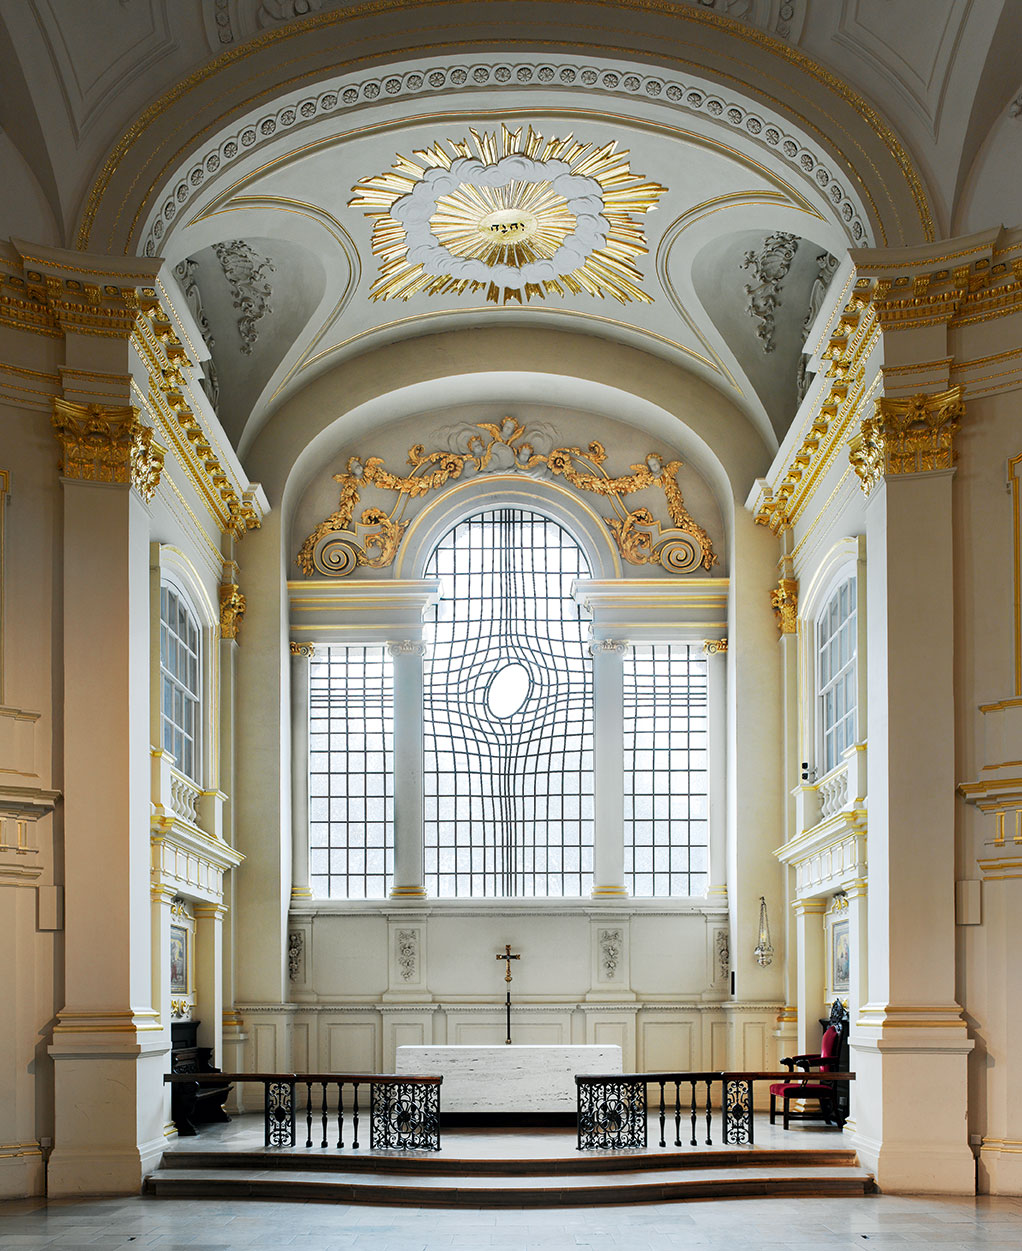 Shirazeh Houshiary and Pip Horne, East Window and Altar, 2011, St. Martin-in-the-Fields, Trafalgar Square, London WC2N 4JJ, England. Photograph by Marc Gascoigne